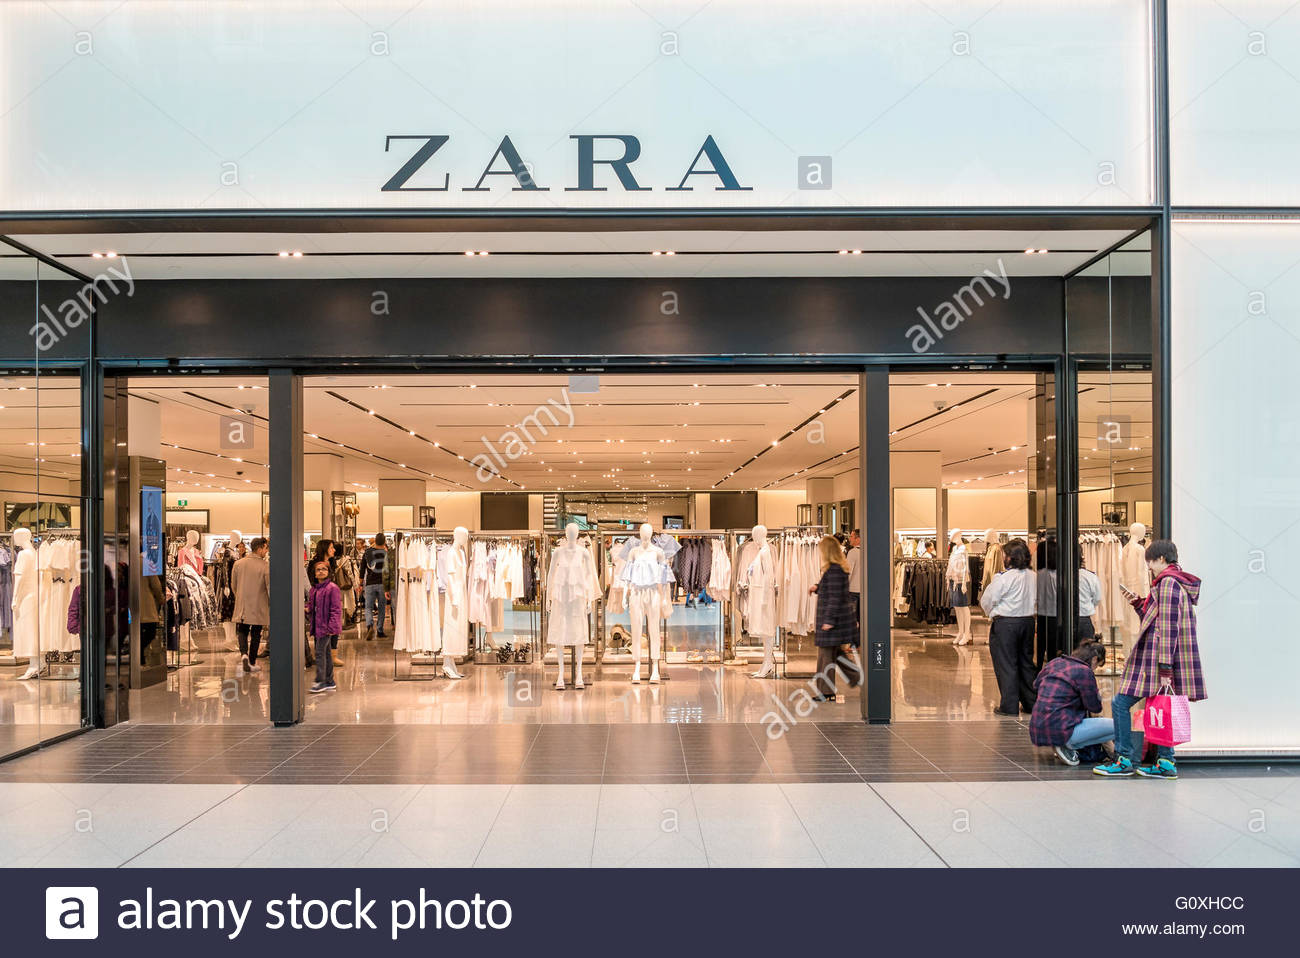 d0544ac8 Zara store entrance in Eaton Center. The company is a Spanish clothing and  accessories retailer